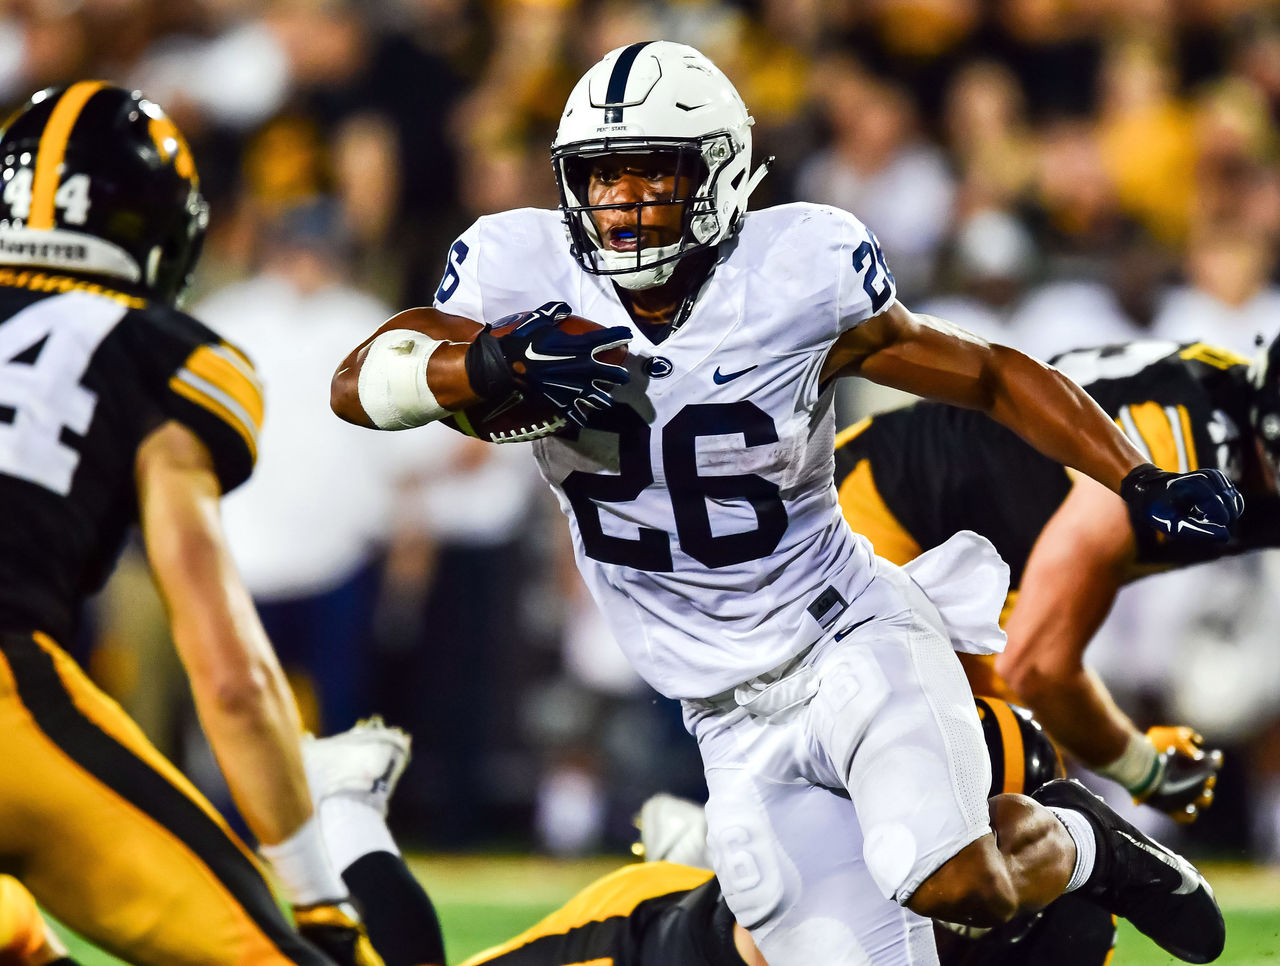 Cropped_2017-09-24t035829z_1558105987_nocid_rtrmadp_3_ncaa-football-penn-state-at-iowa